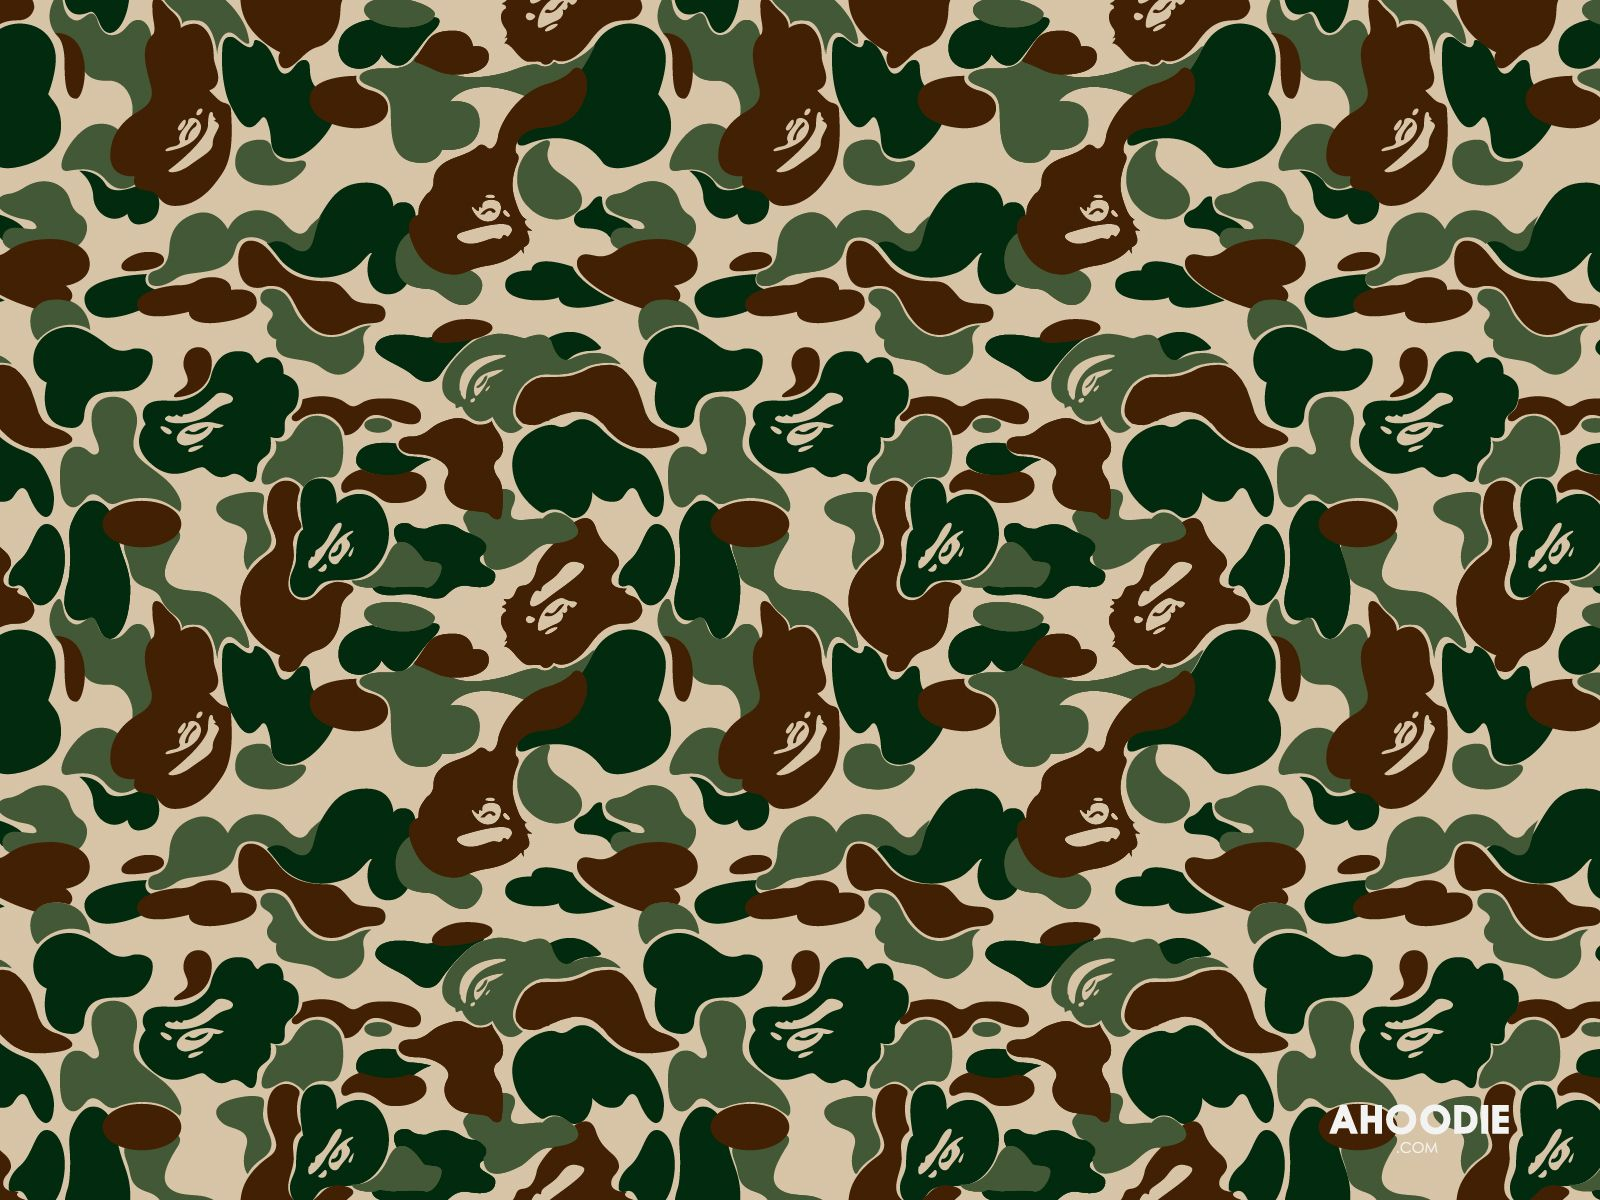 Camo Wallpapers, 38 Camo Wallpapers And Photos In Hd - Louis Vuitton Supreme And Bape - HD Wallpaper